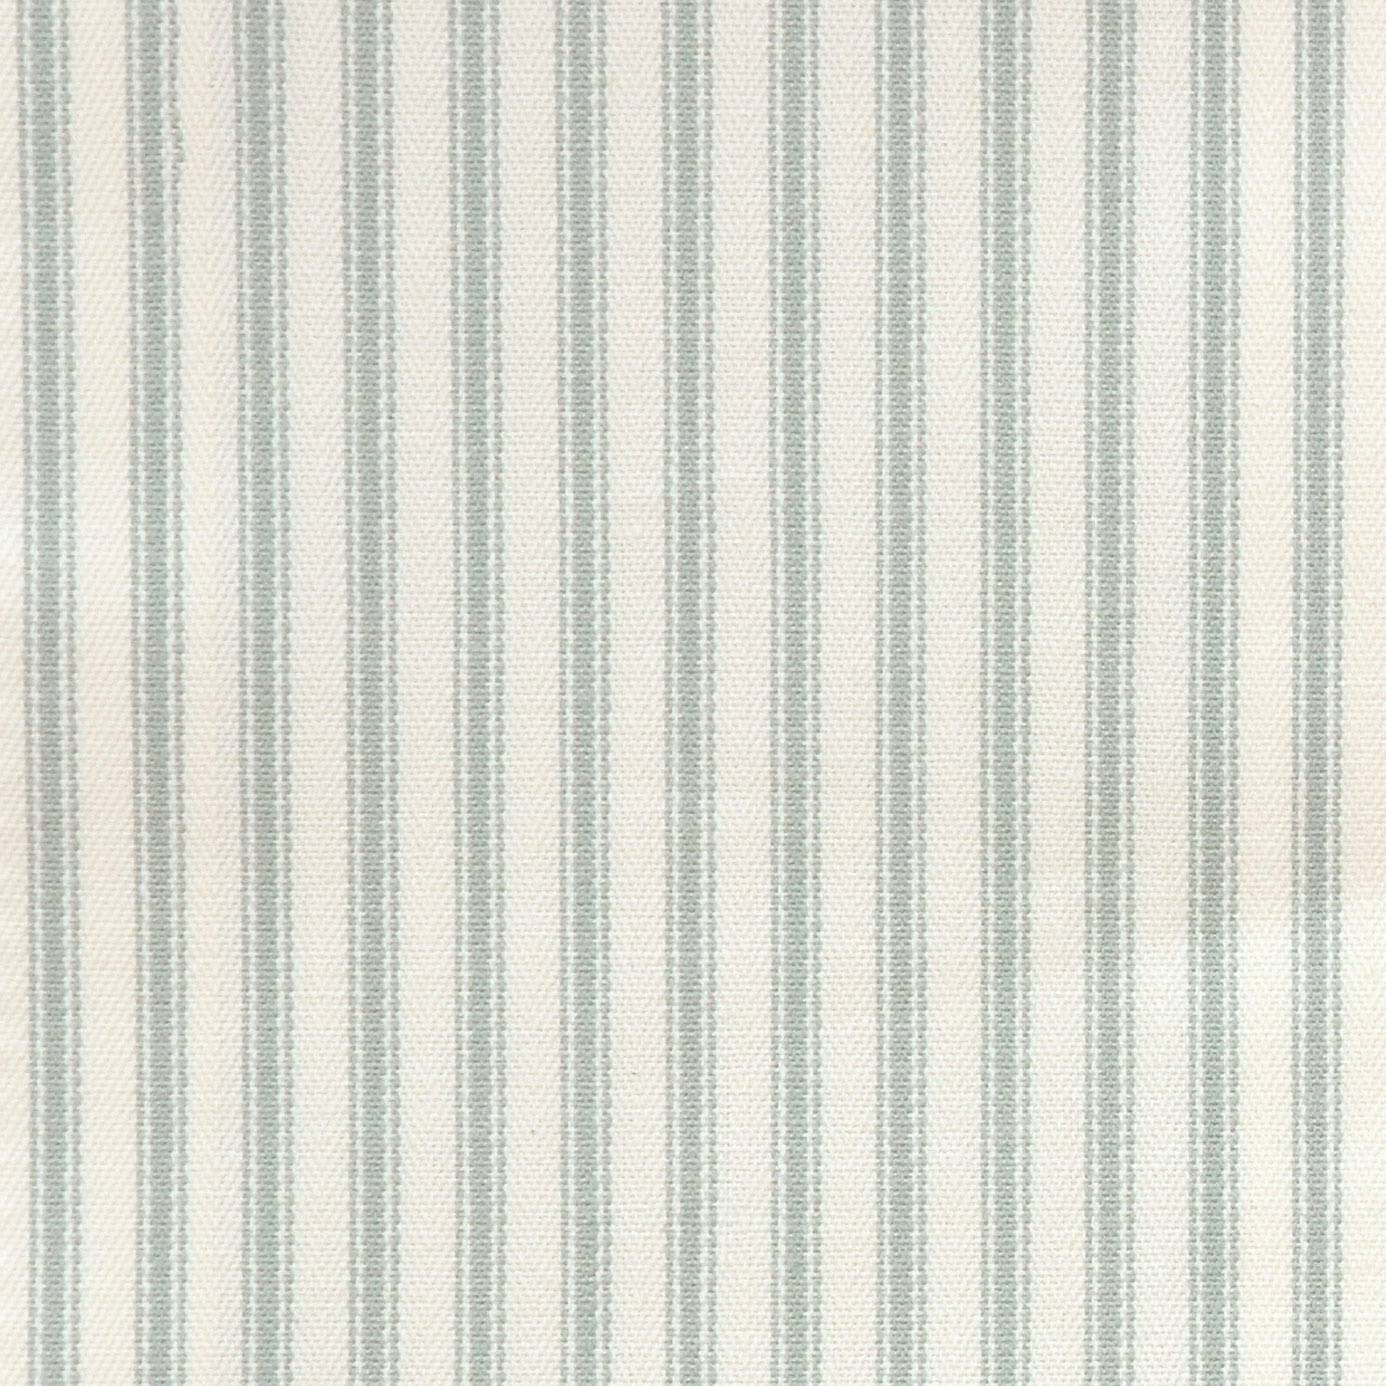 Sutton fabric duckegg f0420 02 clarke clarke for Ticking fabric